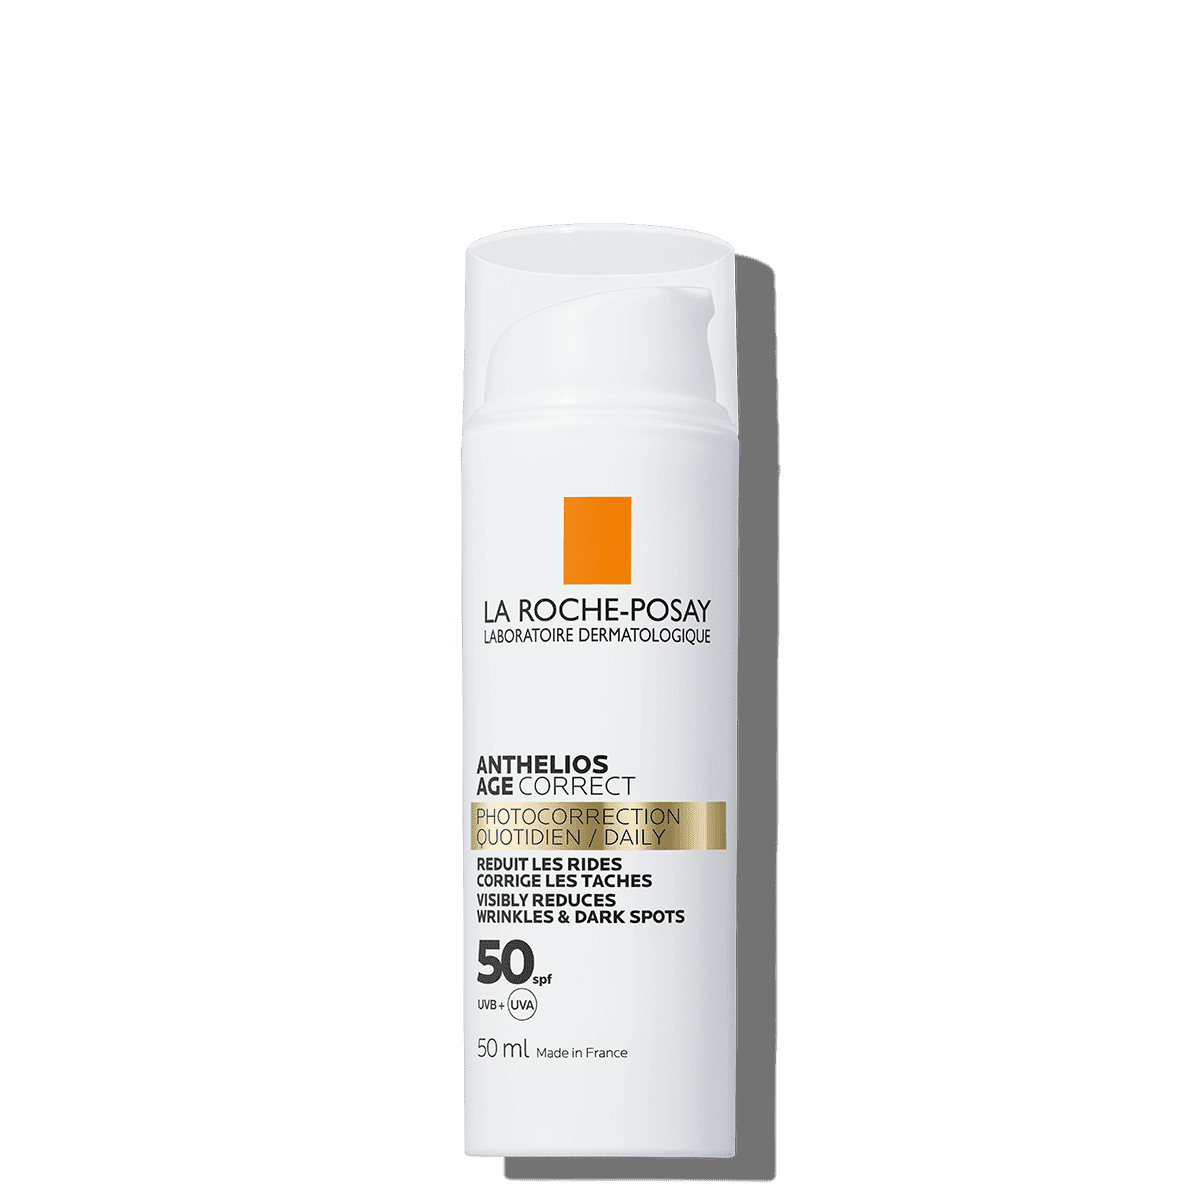 La-Roche-Posay-Anthelios-Age-Correct-SPF50-50ml-NoTeinted-LD-000-3337875761031-Closed-FSS